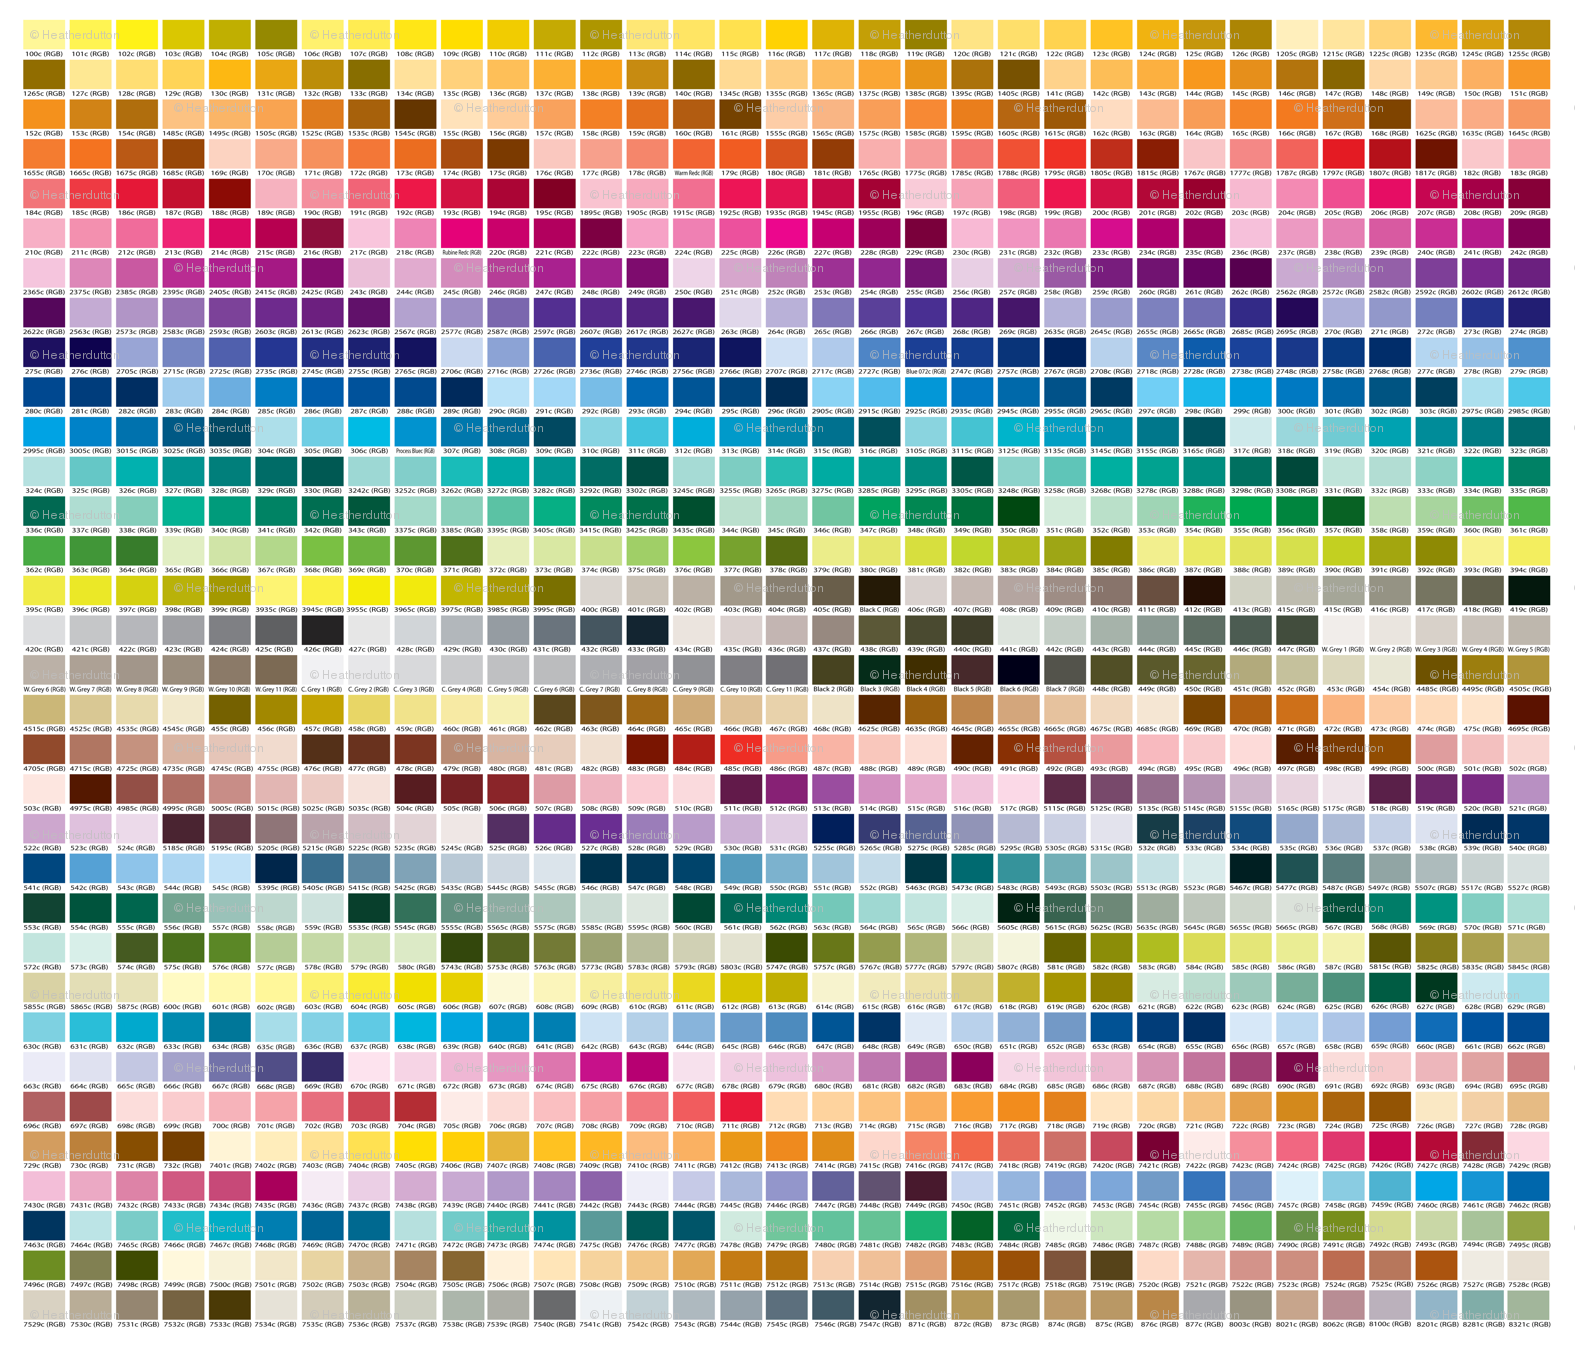 Top Pantone Solid Coated Color Chart Gallery - Chart Example Ideas TB96